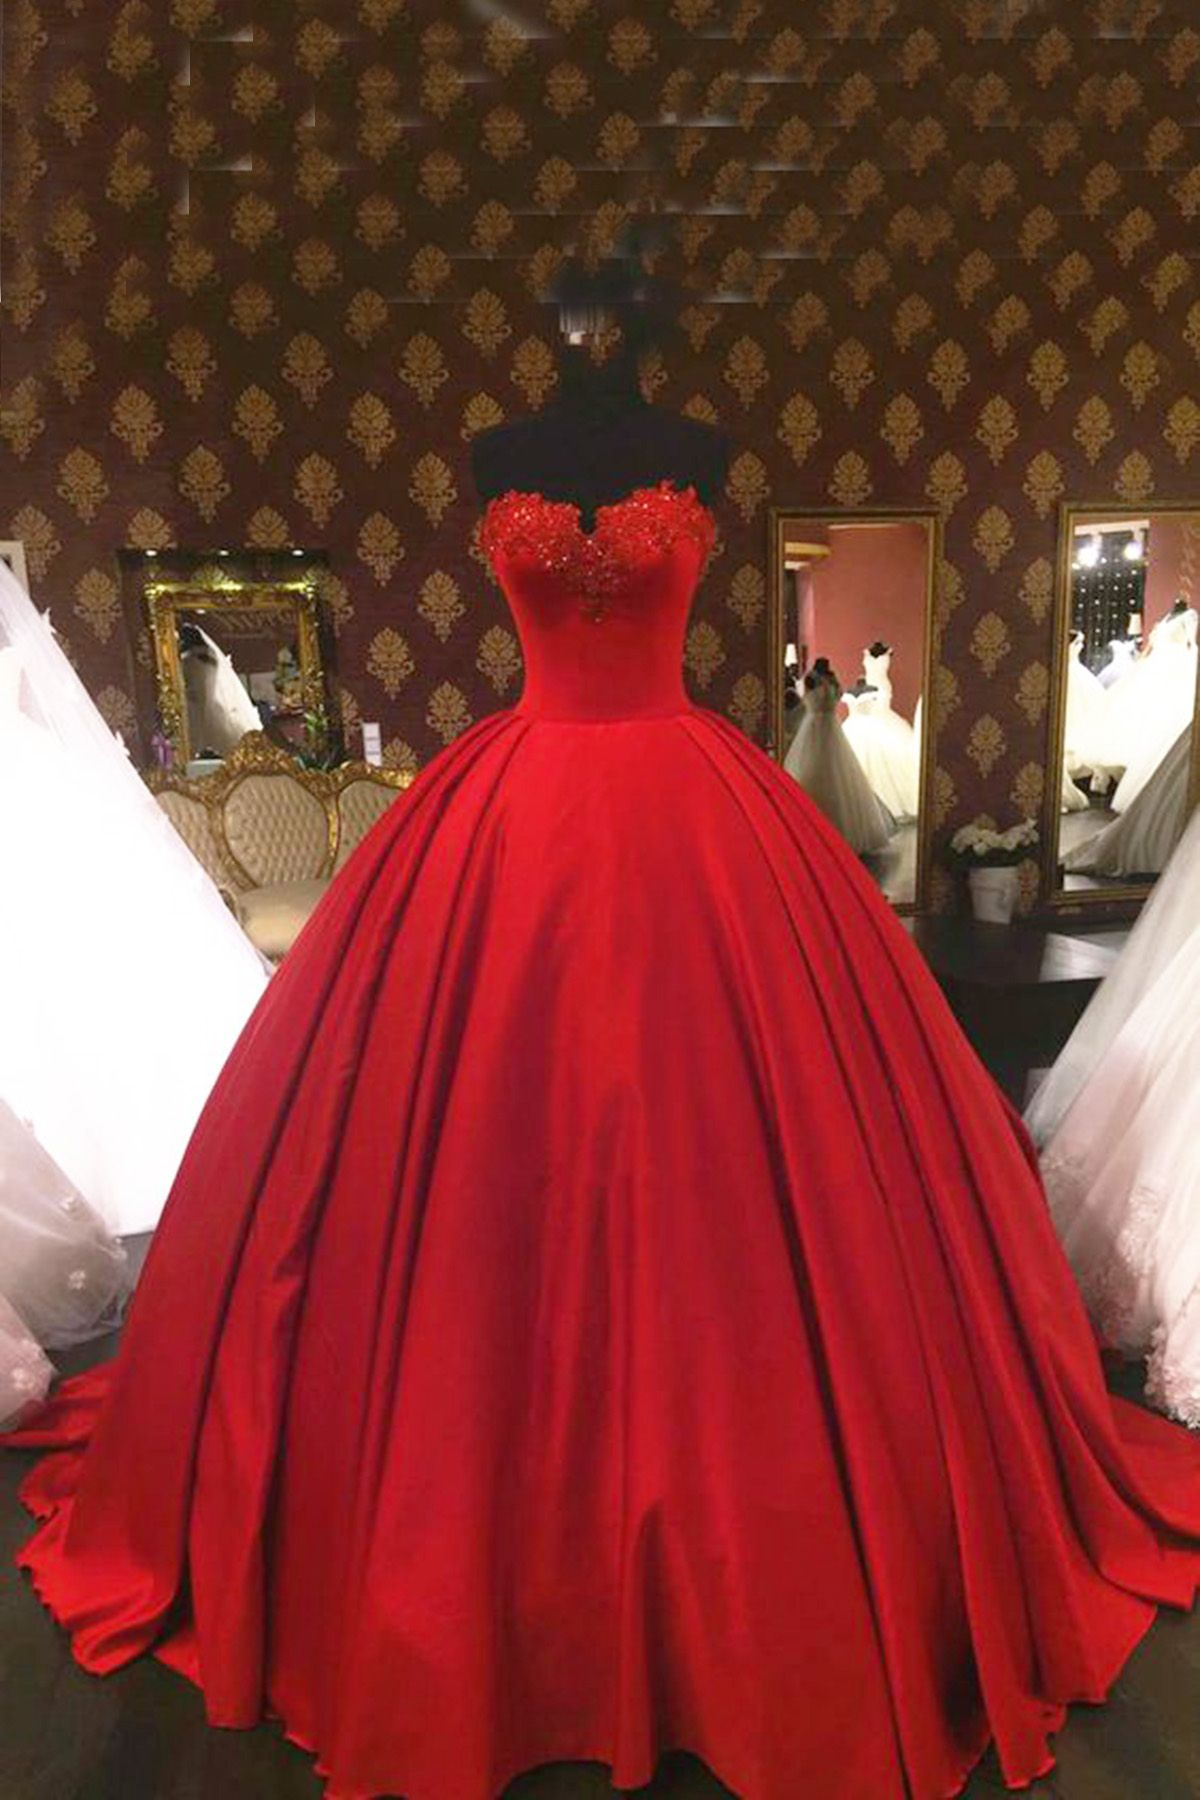 Red satin high waist prom dress ball gowns wedding dress ball